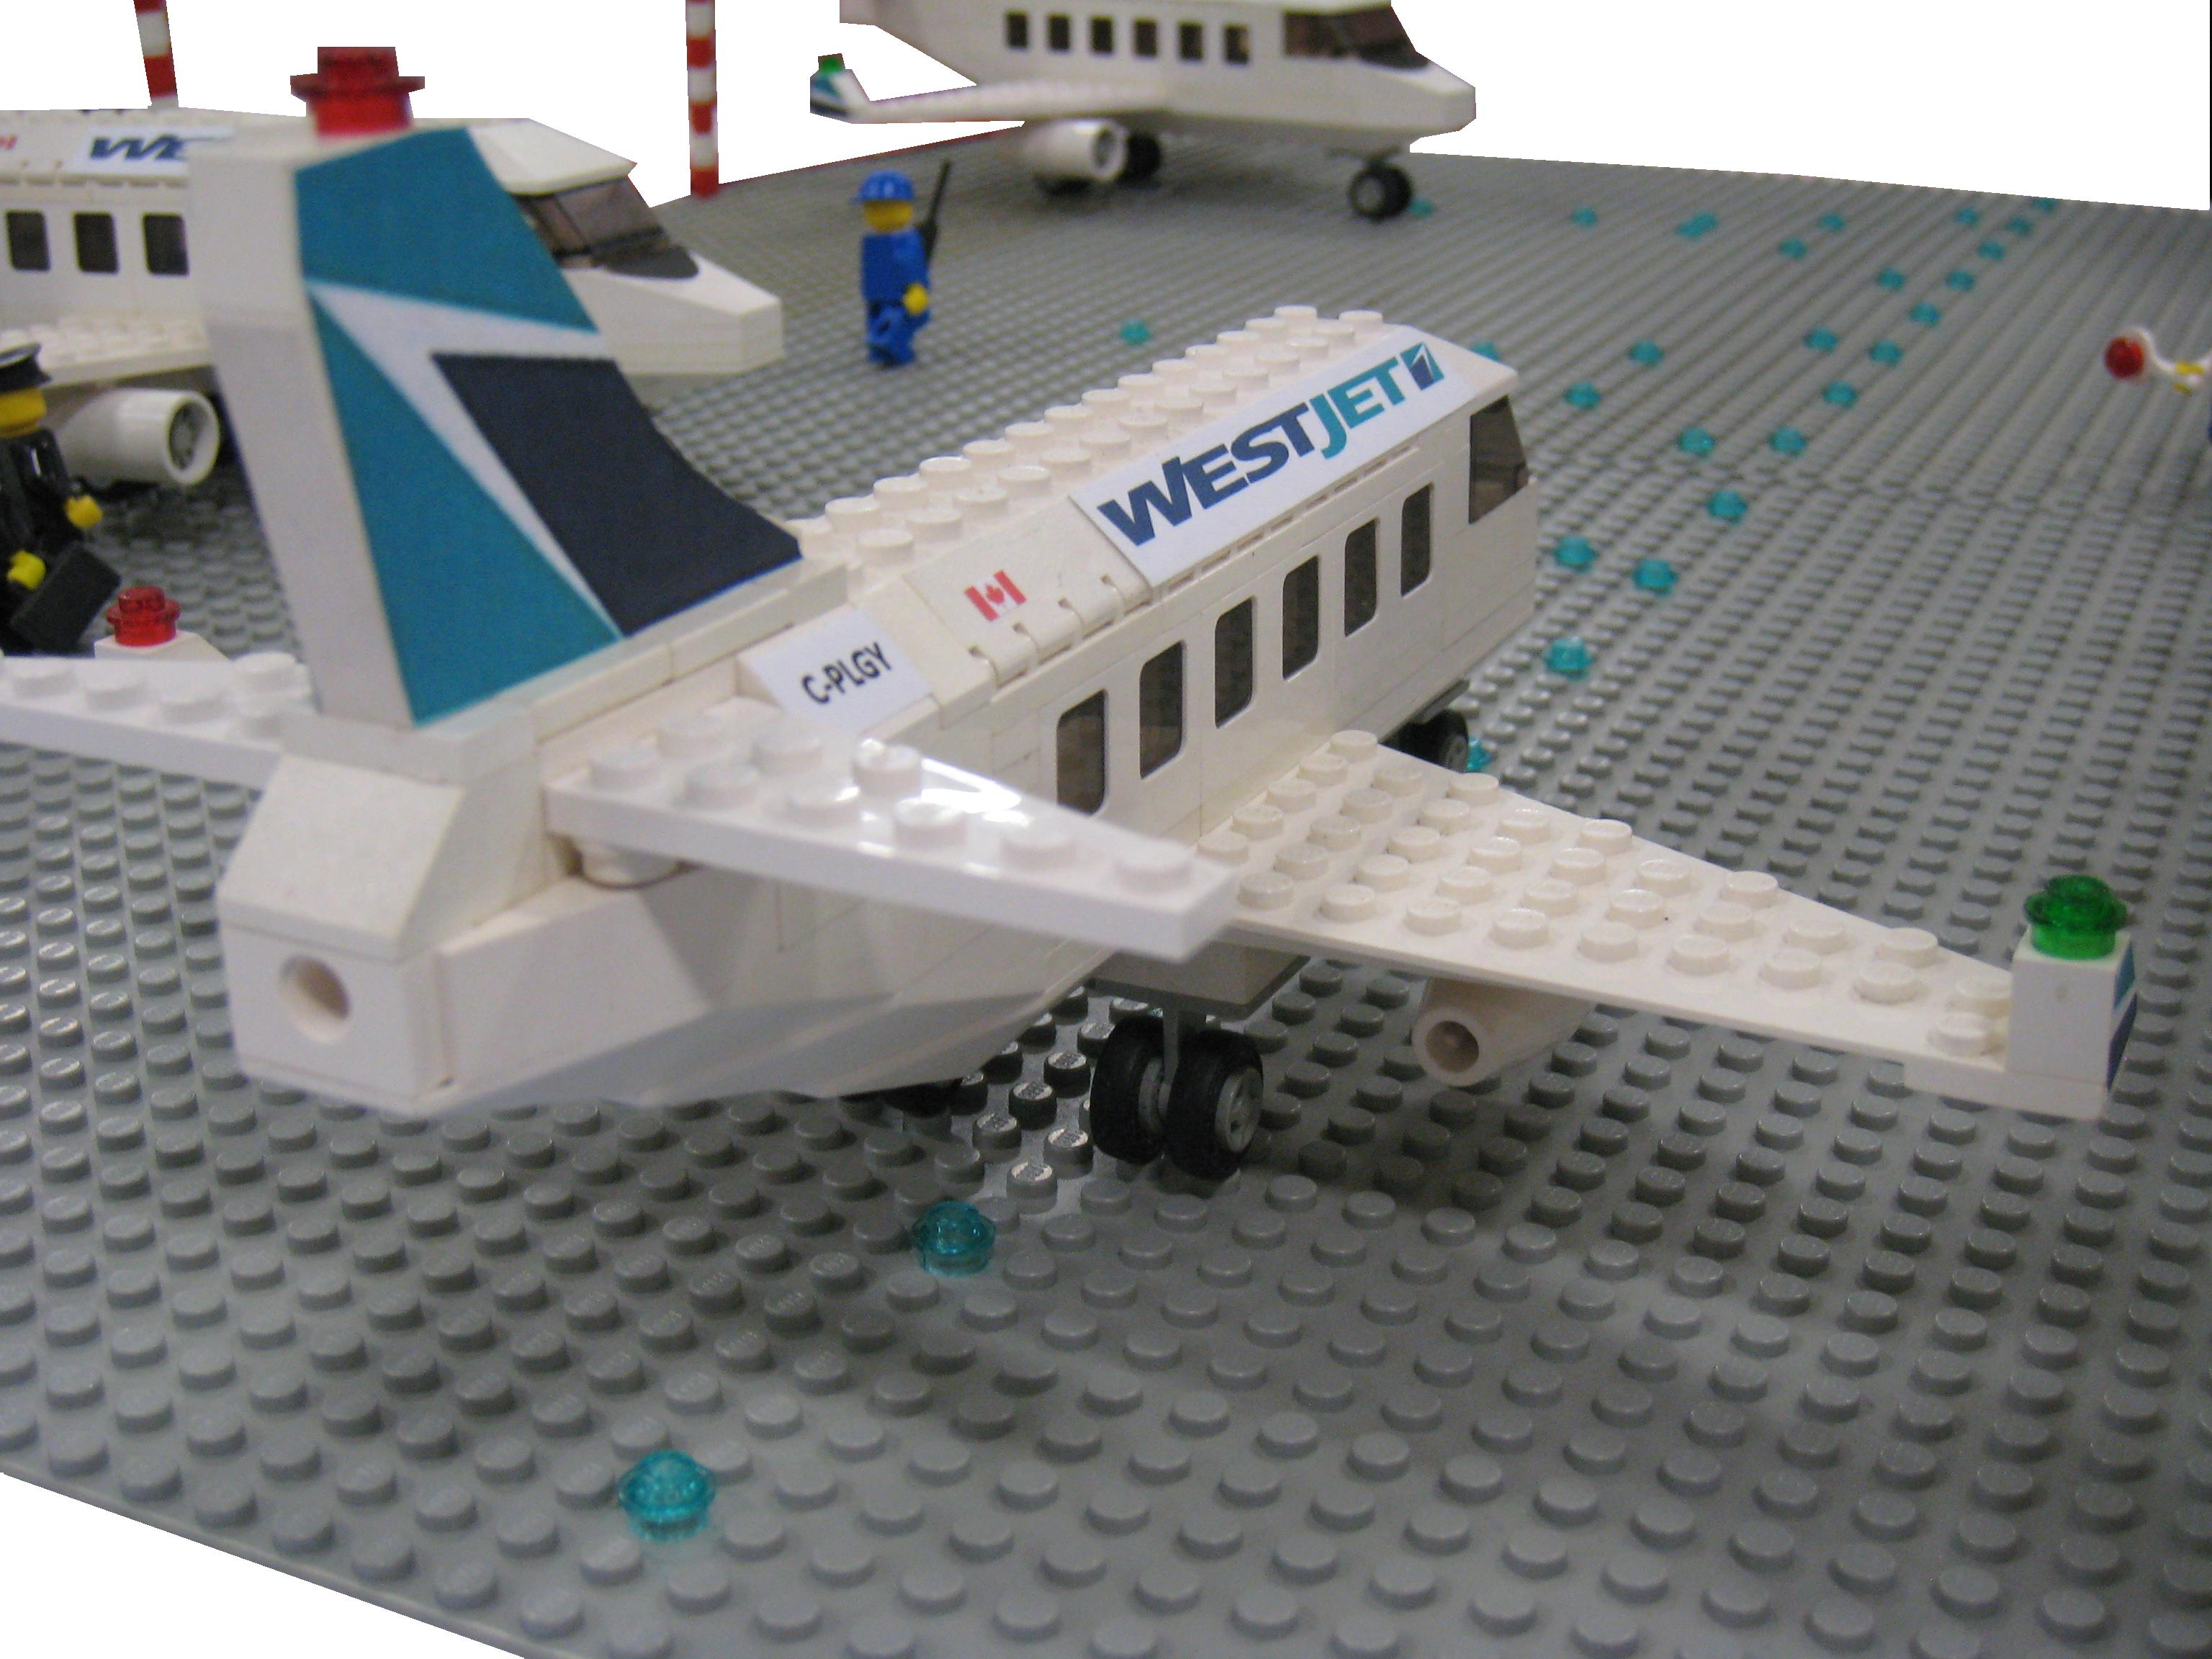 westjet_airplane.jpg